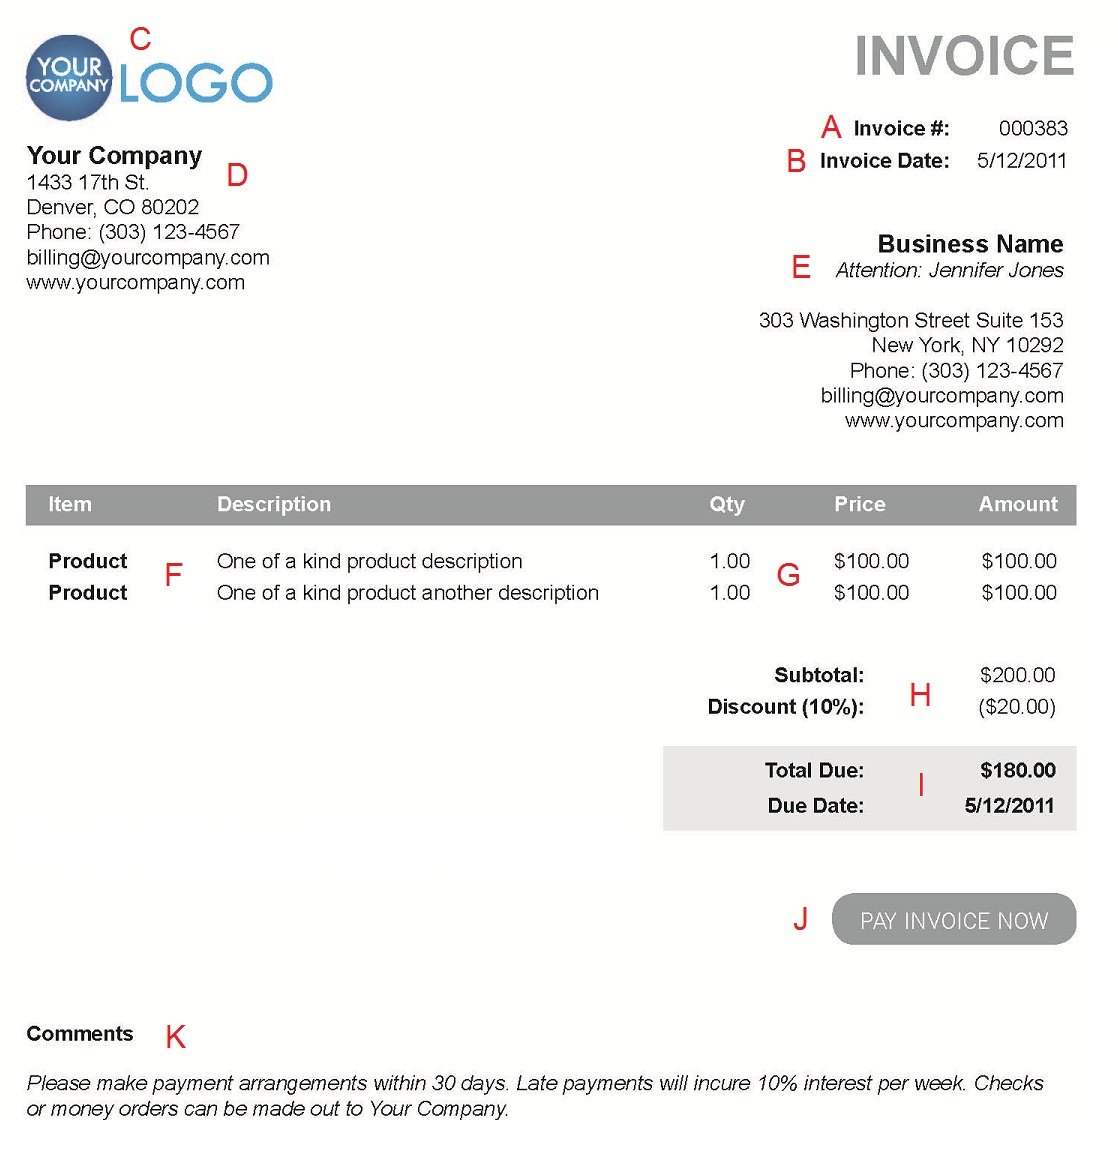 Opposenewapstandardsus  Inspiring The  Different Sections Of An Electronic Payment Invoice With Lovable A  With Appealing Tax Invoice Requirement Also Sales Invoice Format In Excel In Addition Tally Invoice And Po Invoices As Well As Pdf Invoice Creator Additionally Google Documents Invoice Template From Paysimplecom With Opposenewapstandardsus  Lovable The  Different Sections Of An Electronic Payment Invoice With Appealing A  And Inspiring Tax Invoice Requirement Also Sales Invoice Format In Excel In Addition Tally Invoice From Paysimplecom